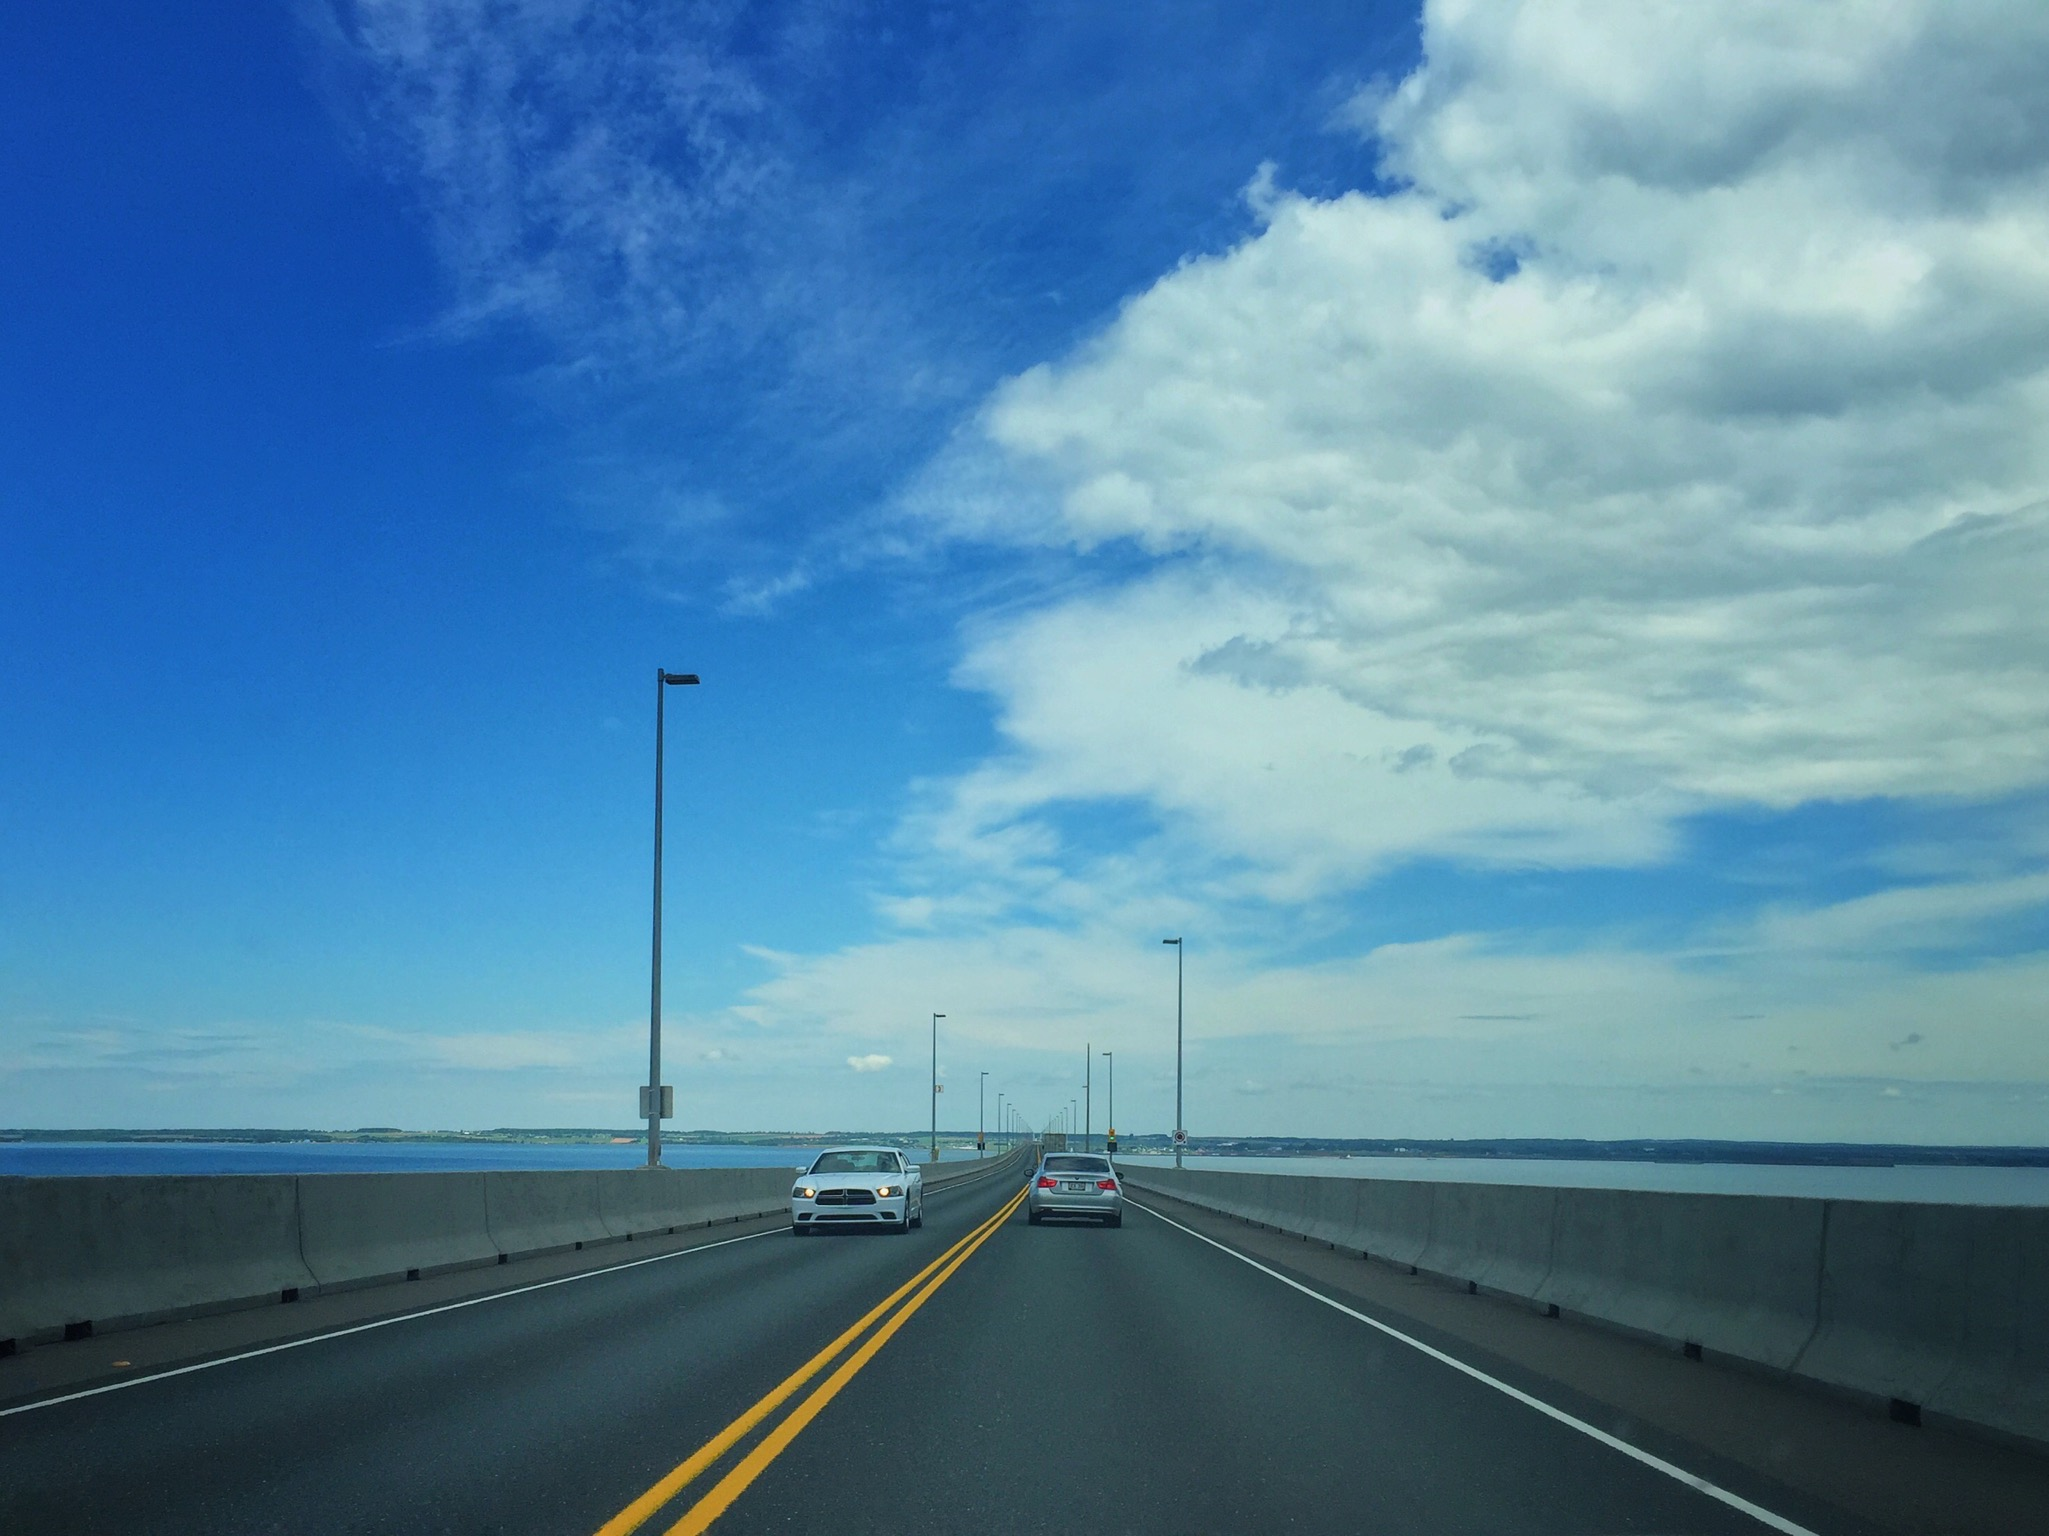 Crossing the Confederation Bridge into PEI